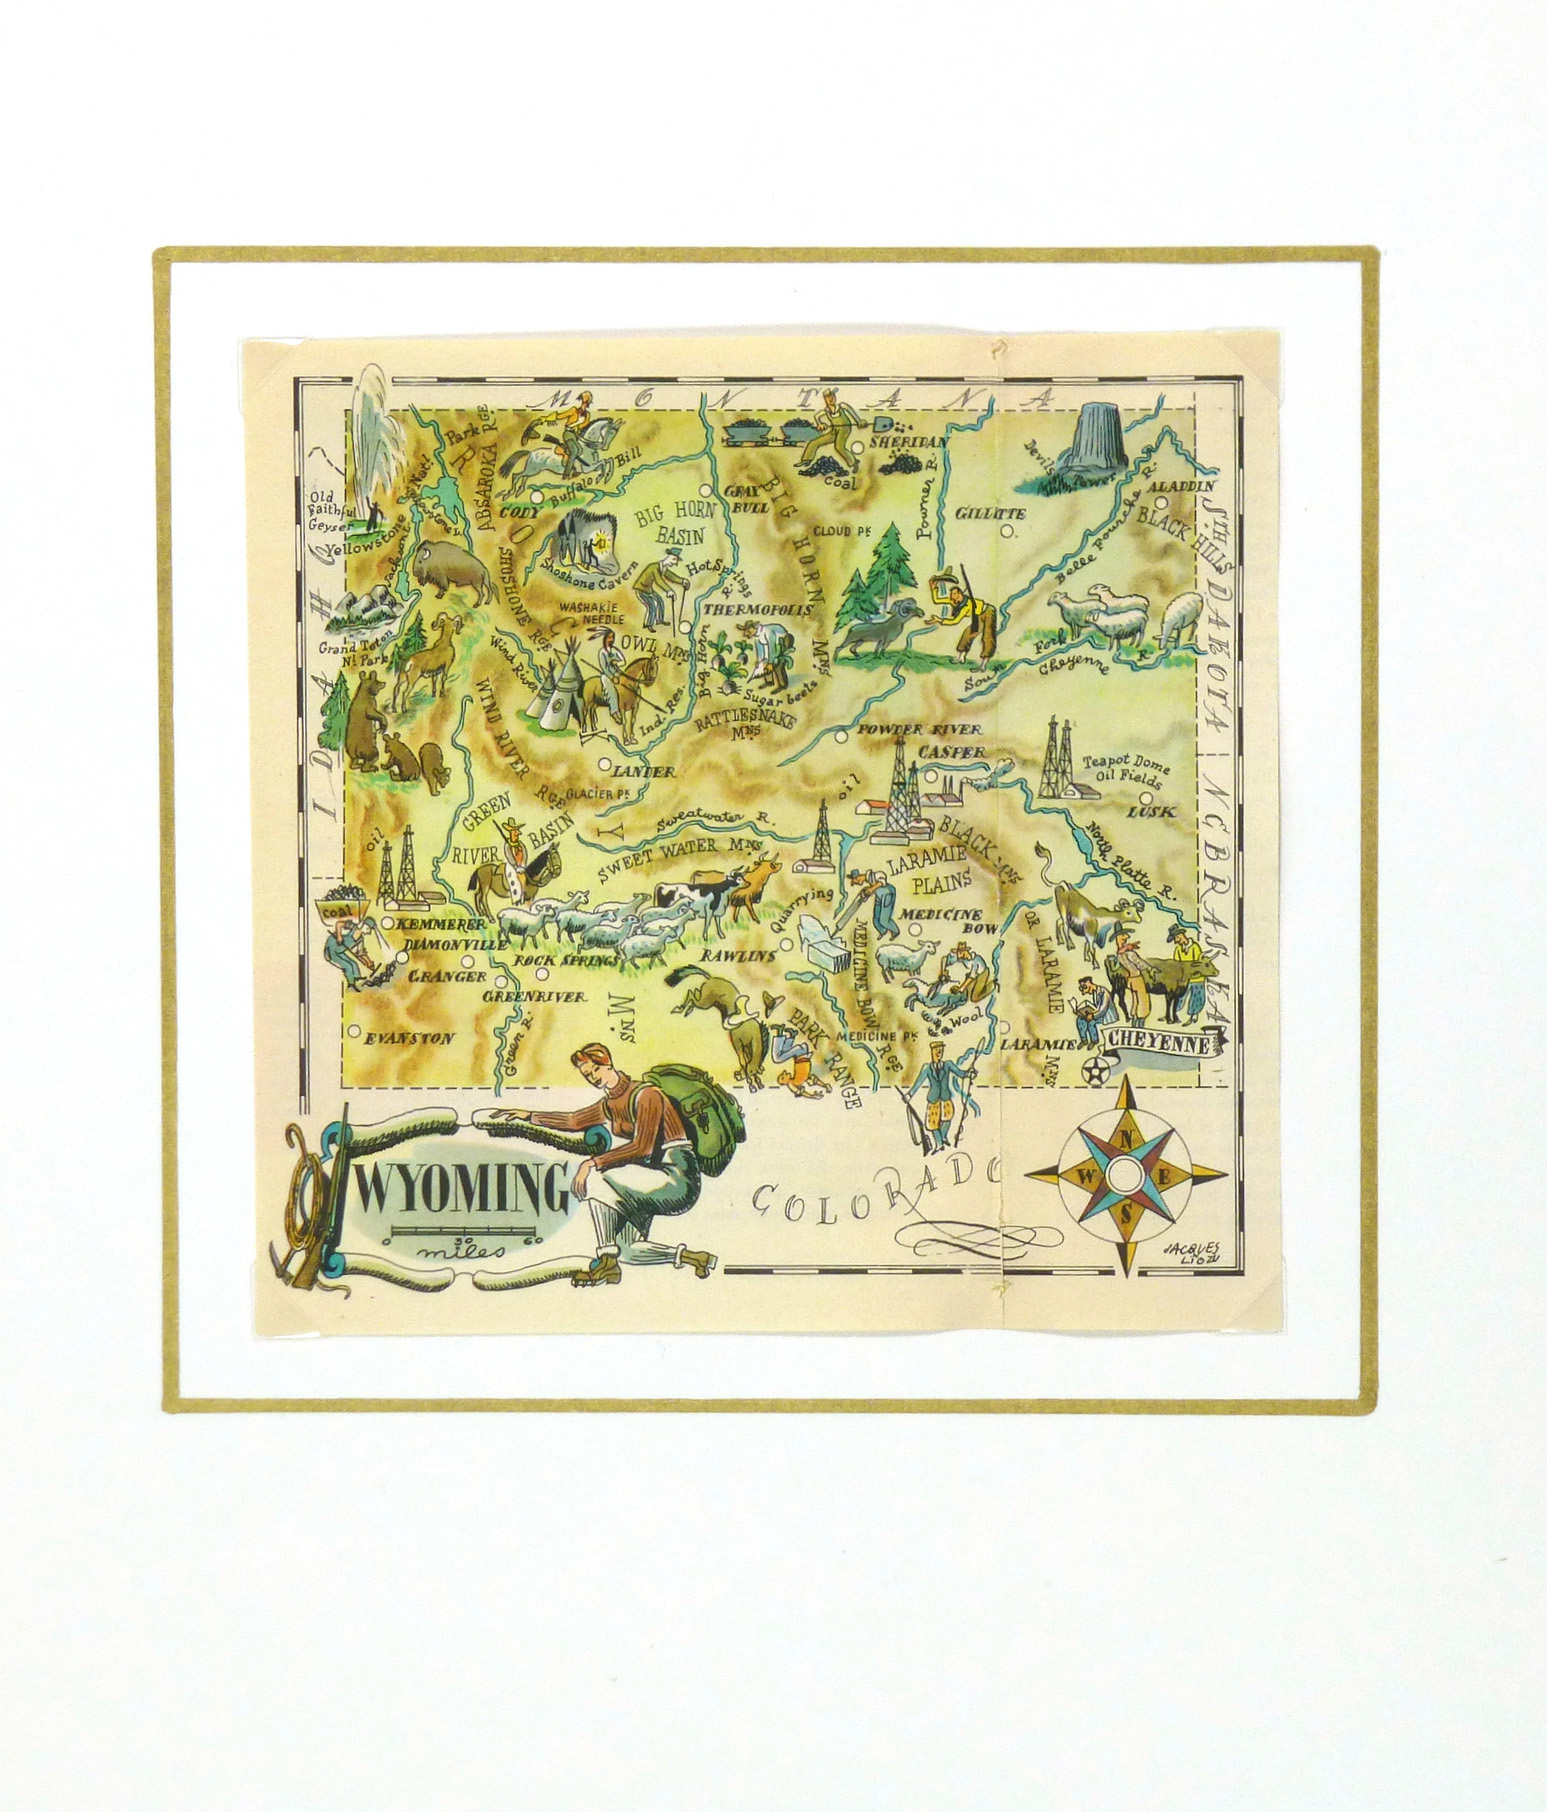 Wyoming Pictorial Map, 1946-matted-6274K